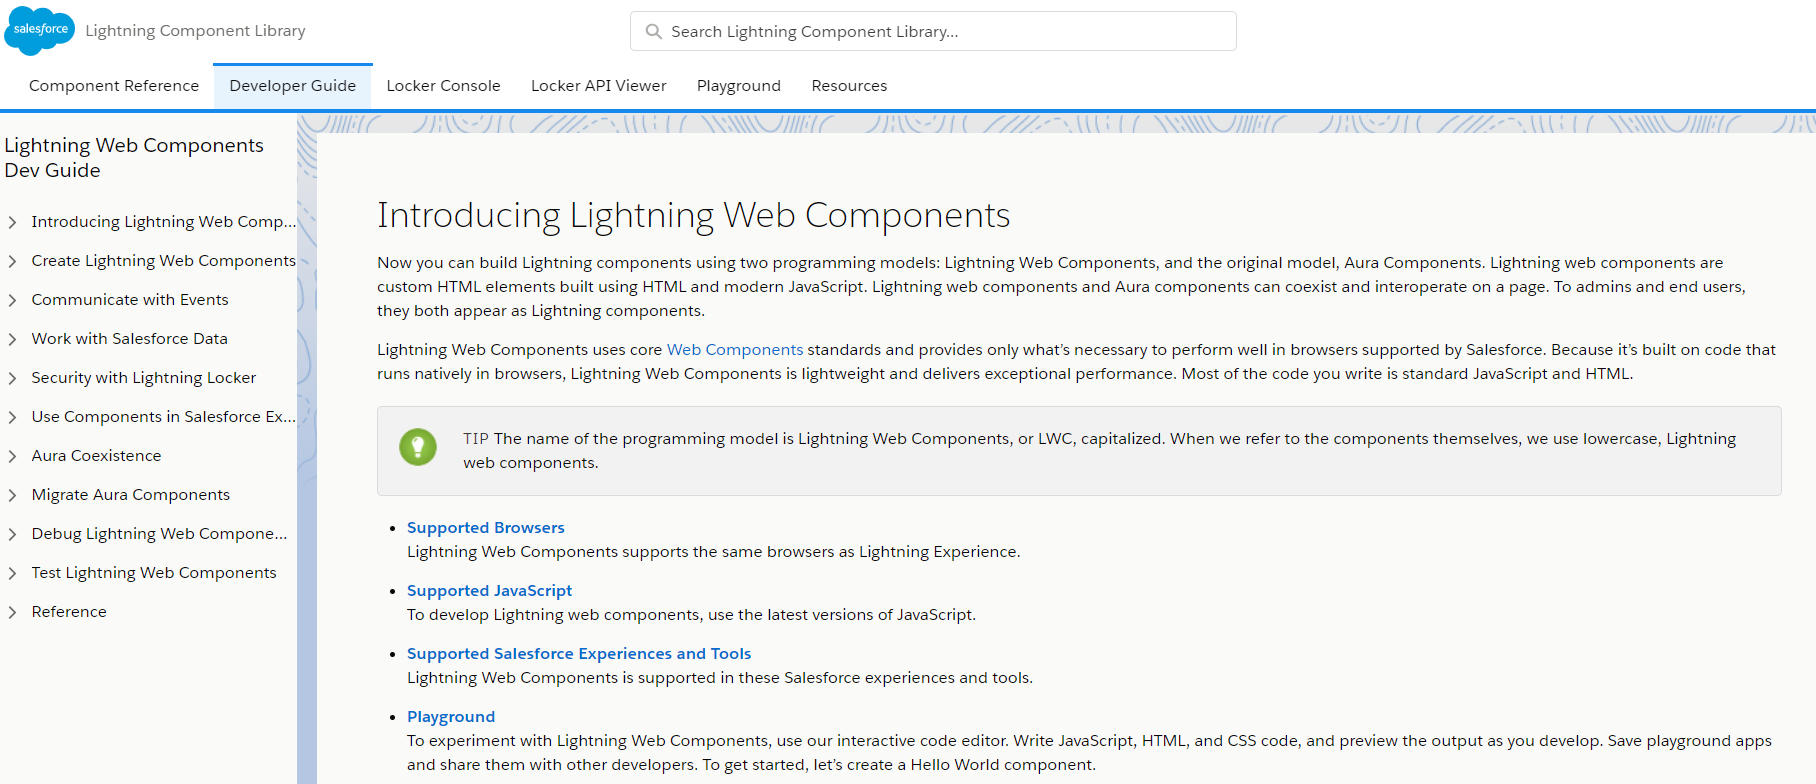 Lightning Web Components (LWC) in Salesforce documents hands-on experience.